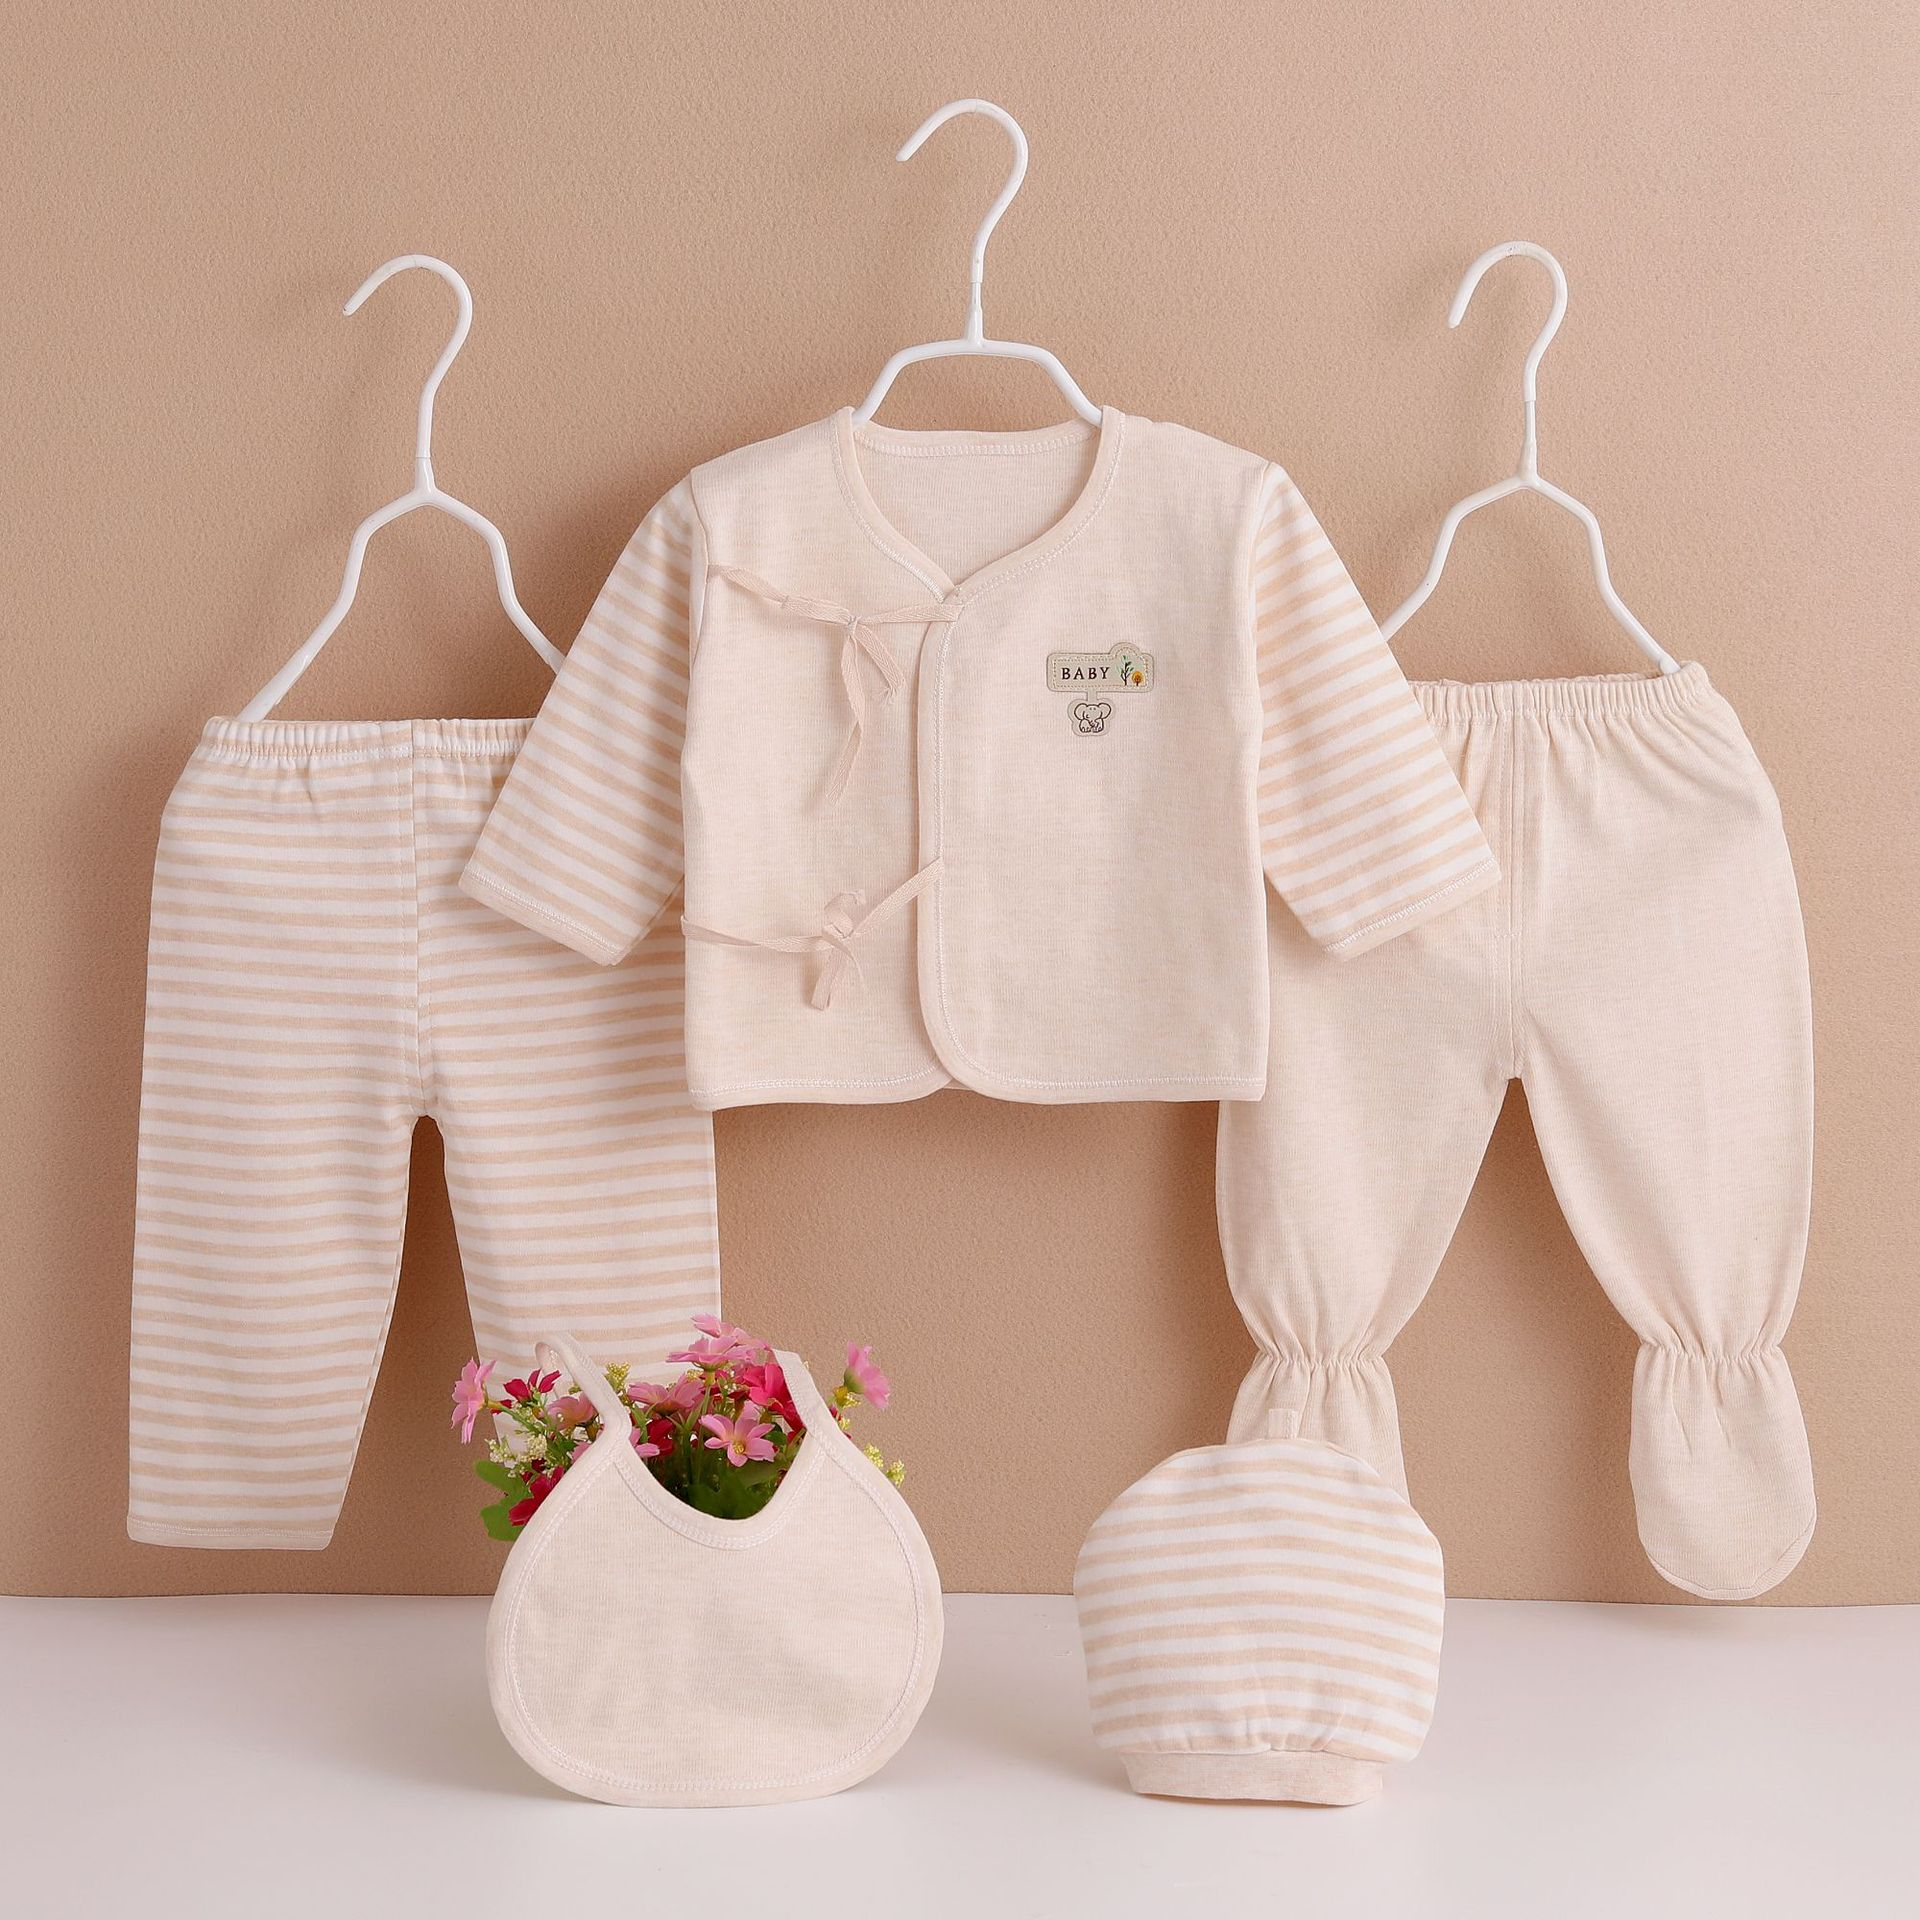 Four Seasons New Style Cotton Clothes Newborns Infants Colored Cotton 5-Piece Set Baby Five-Piece Plastic Bag Packaging